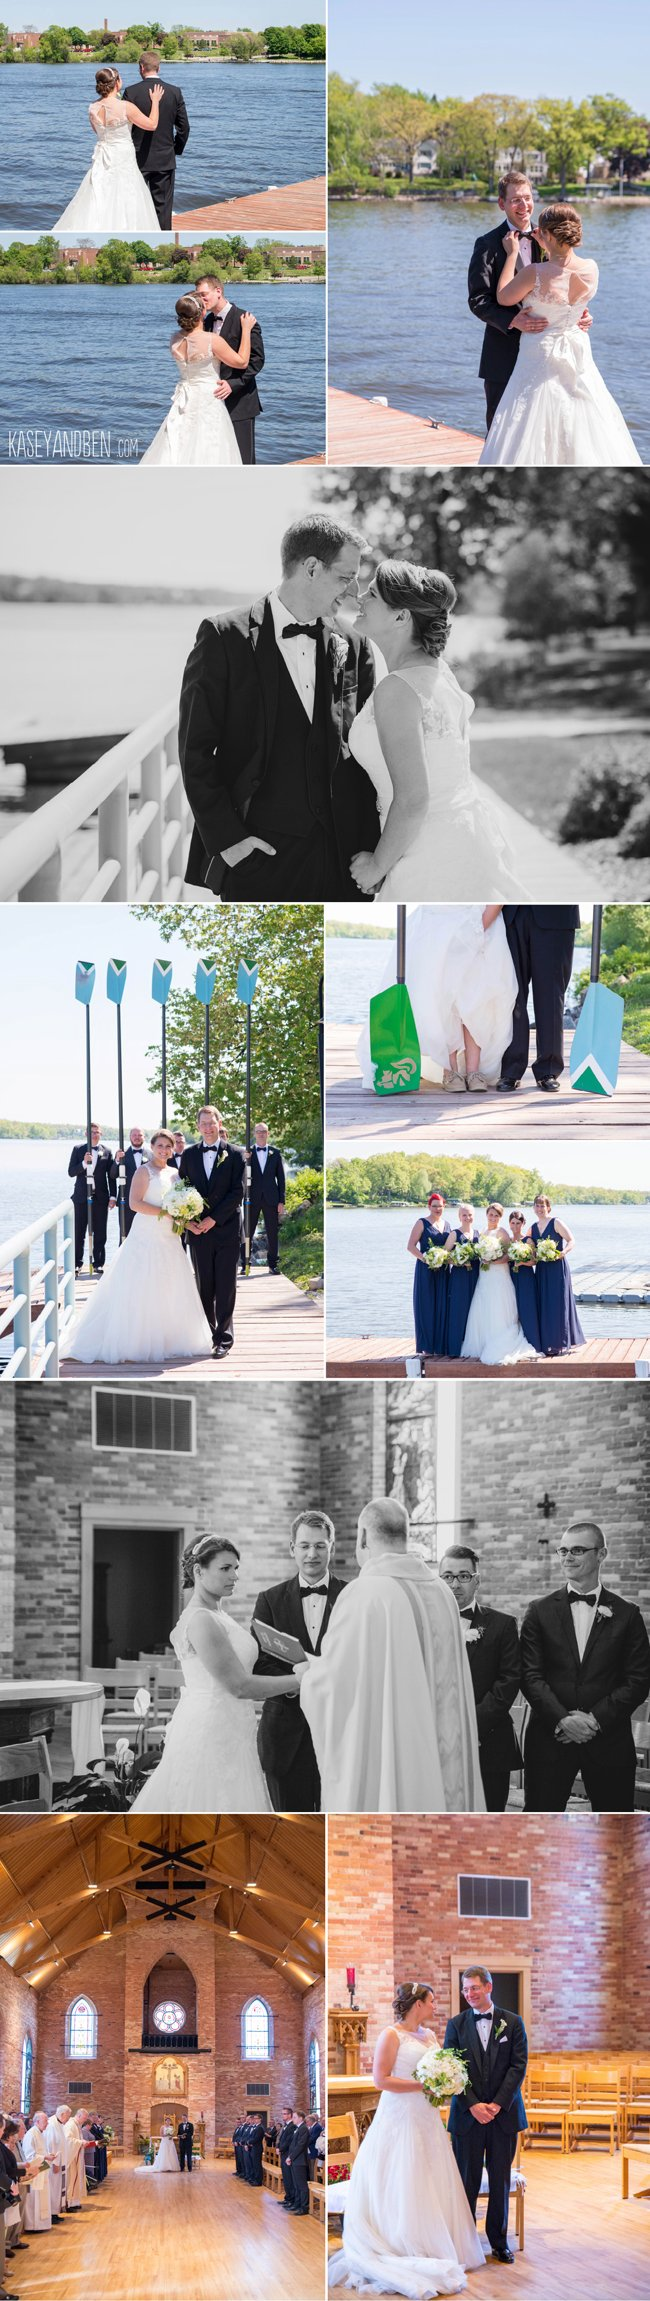 St-Norbert-Wedding-Photography-De-Pere-Wisconsin-Fox-River-Rowing-Bemis-Center-First-Look-Destination-Center-Kress-Kasey-and-Ben-Green-Bay-2